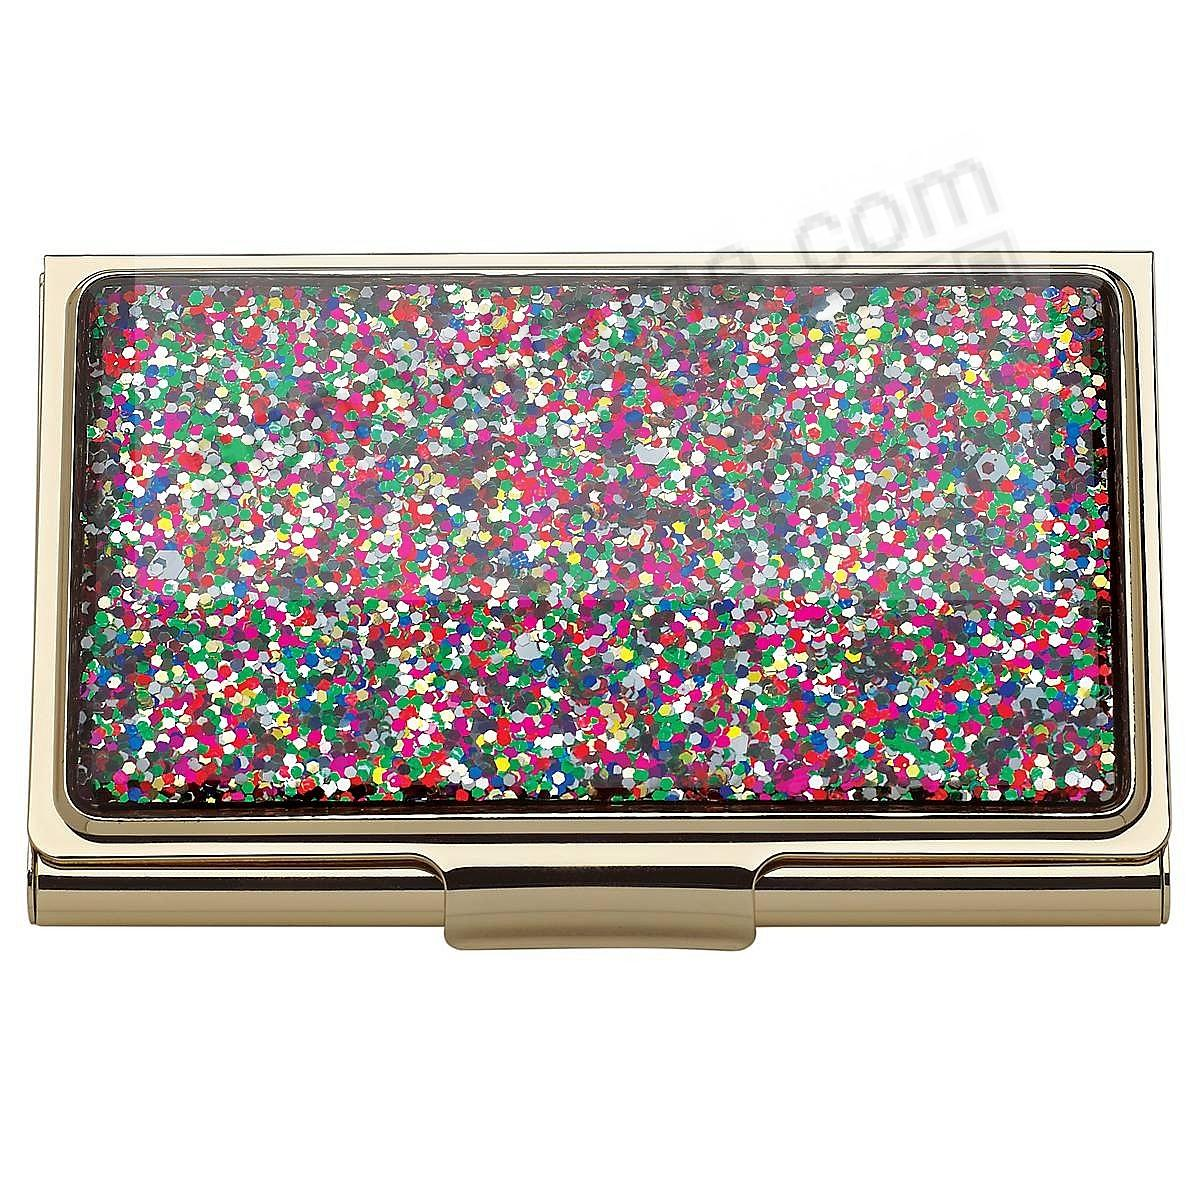 SIMPLY SPARKING MULTI/GOLD GLITTER Business Card / ID Case by kate spade new york®